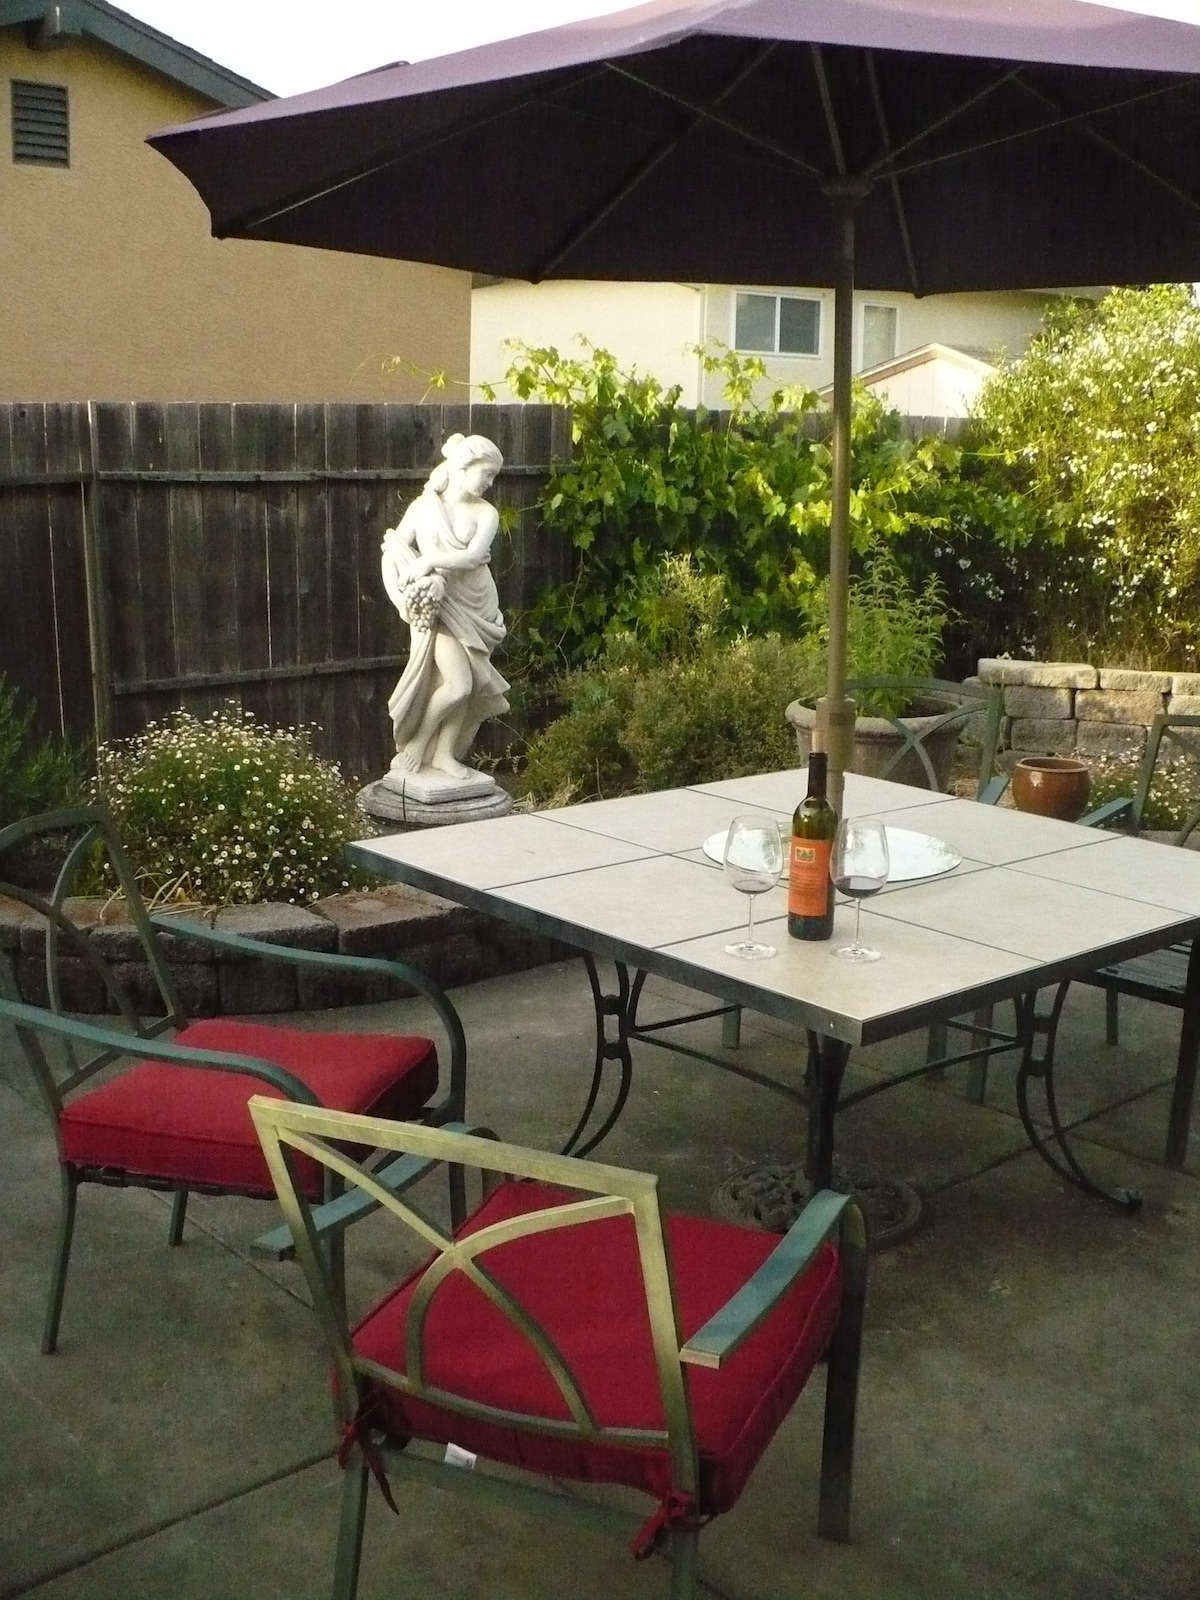 Enjoy an evening glass of wine on the patio...